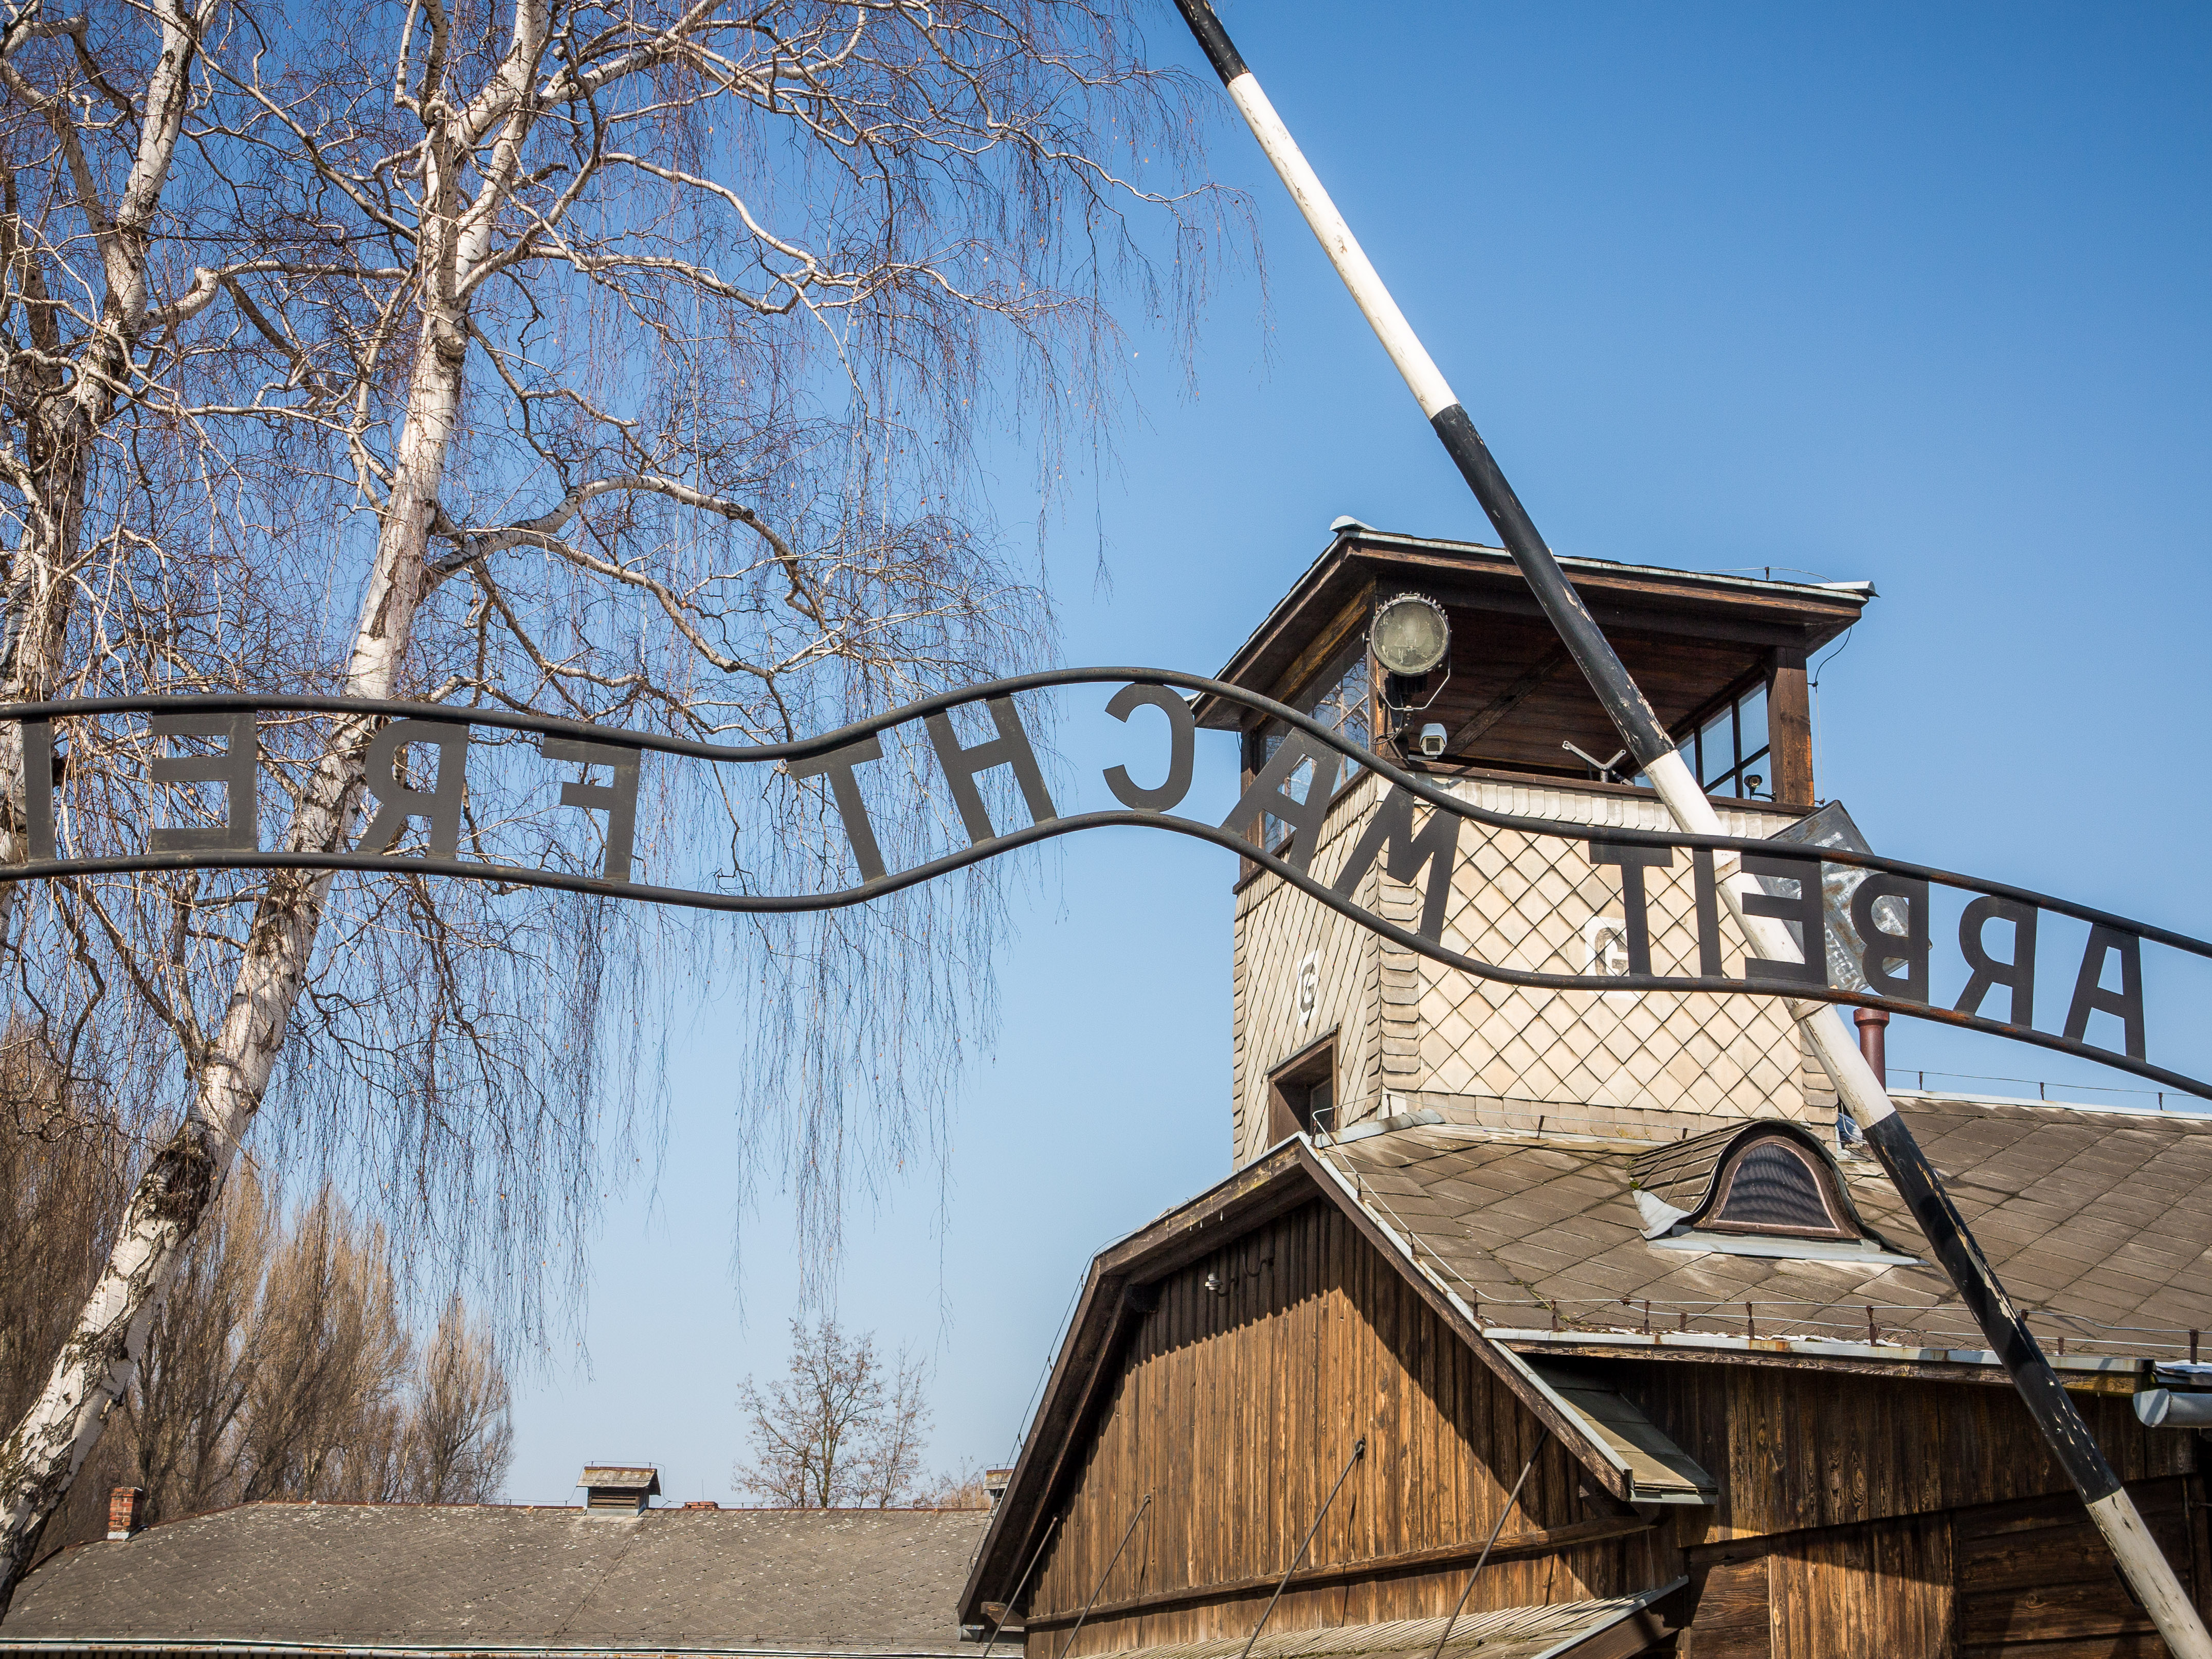 Purchase An Essay Arbeit Macht Frei Work Makes You Free Auschwitz Entrance Purchase An Essay